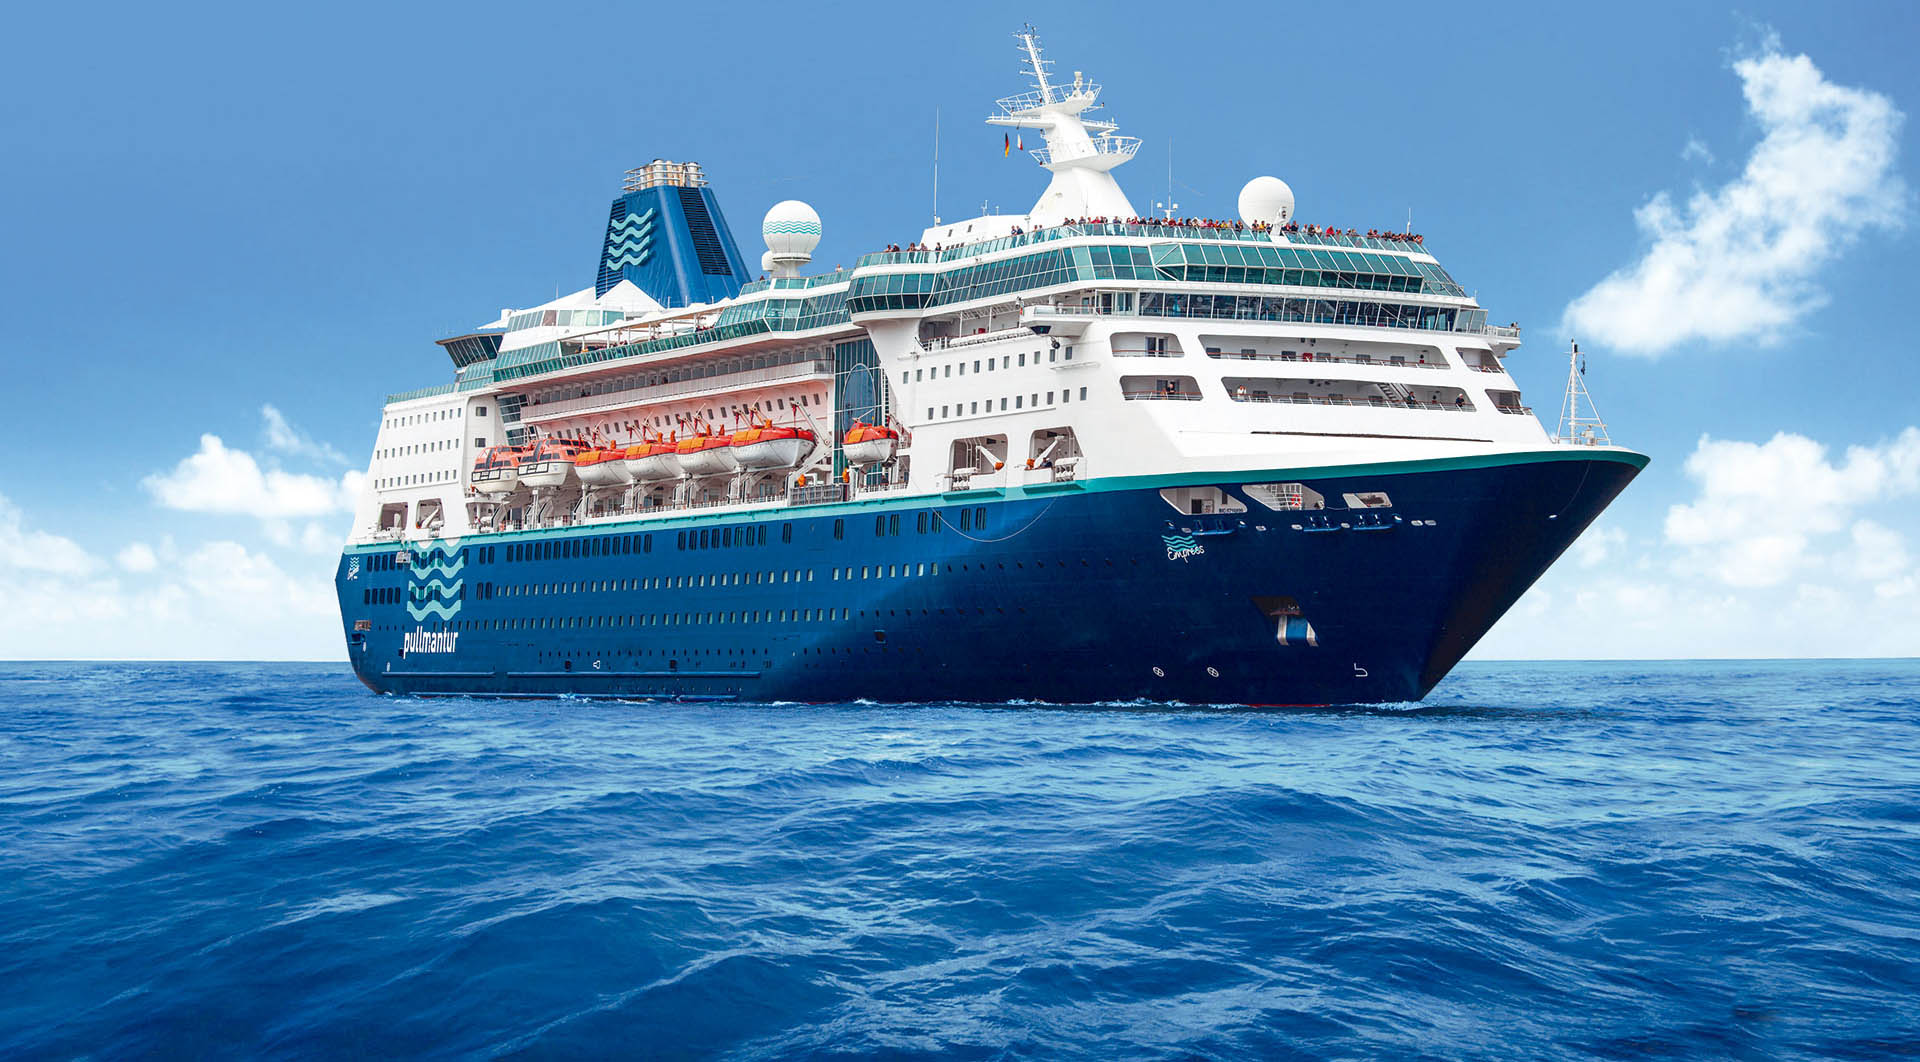 Pullmantur Cruises: Without the support of its investors, announces its liquidation in one year